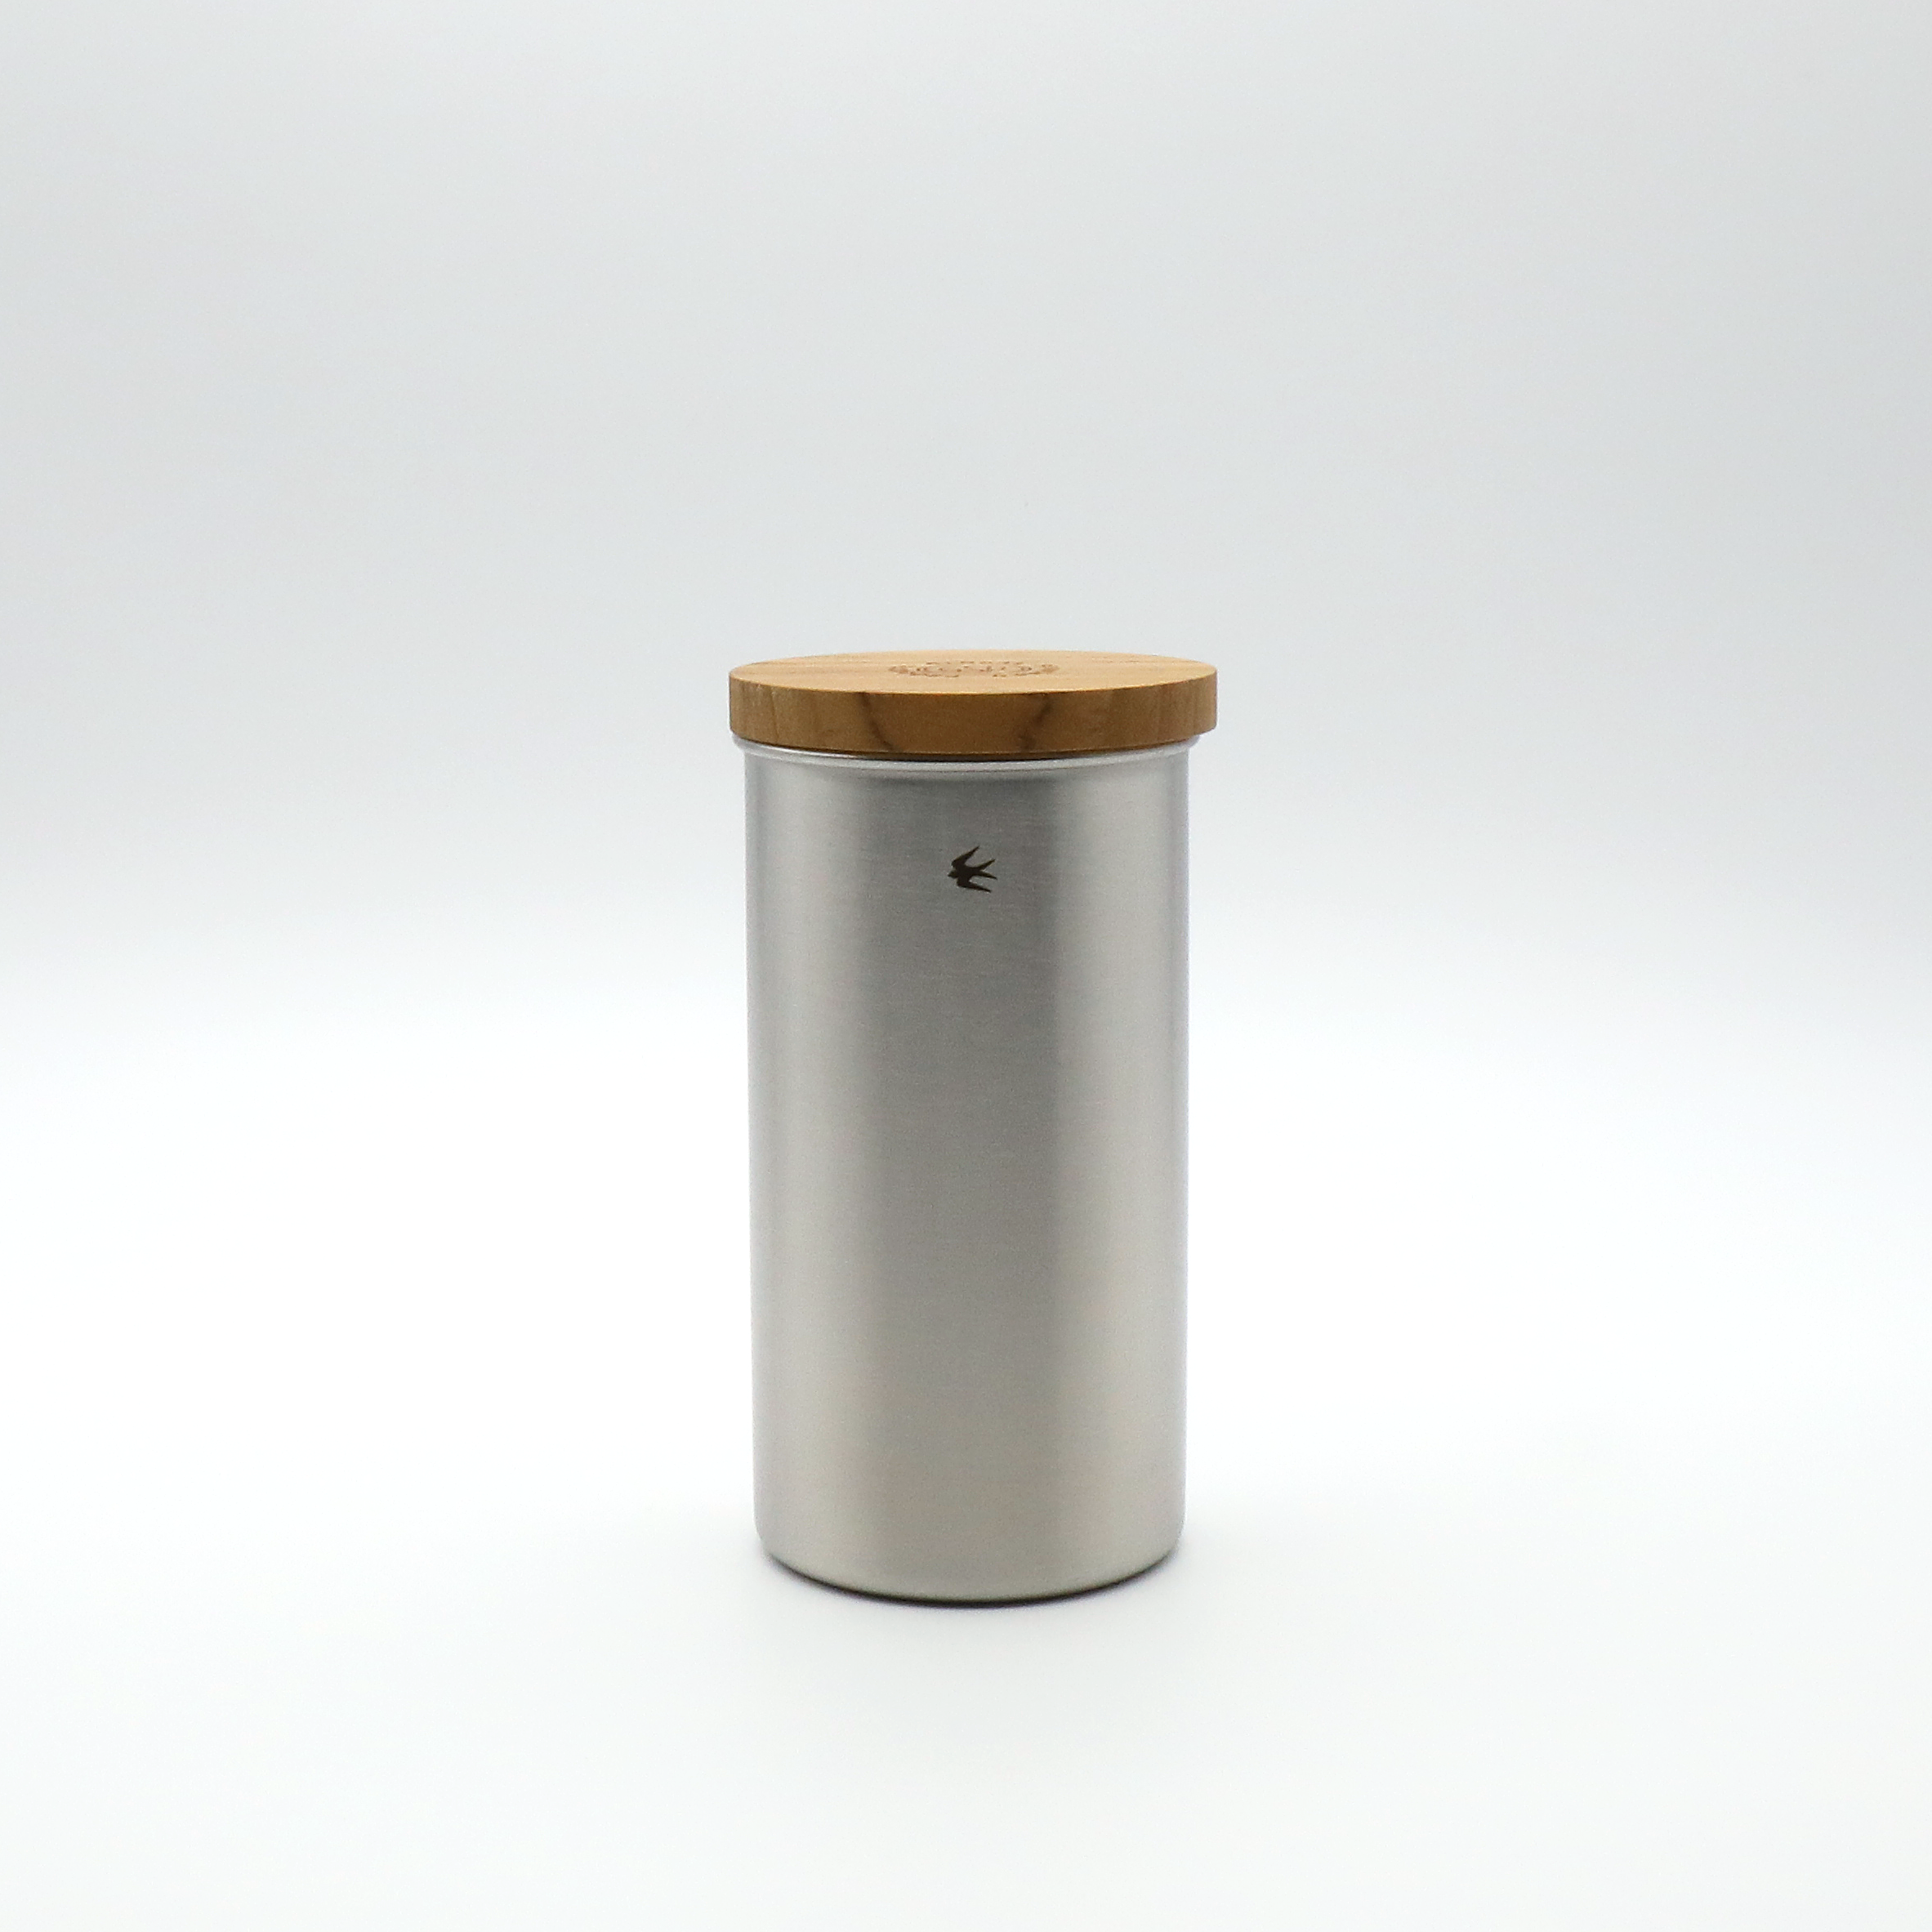 GLOCAL STANDARD PRODUCTS / TSUBAME Canister / Long